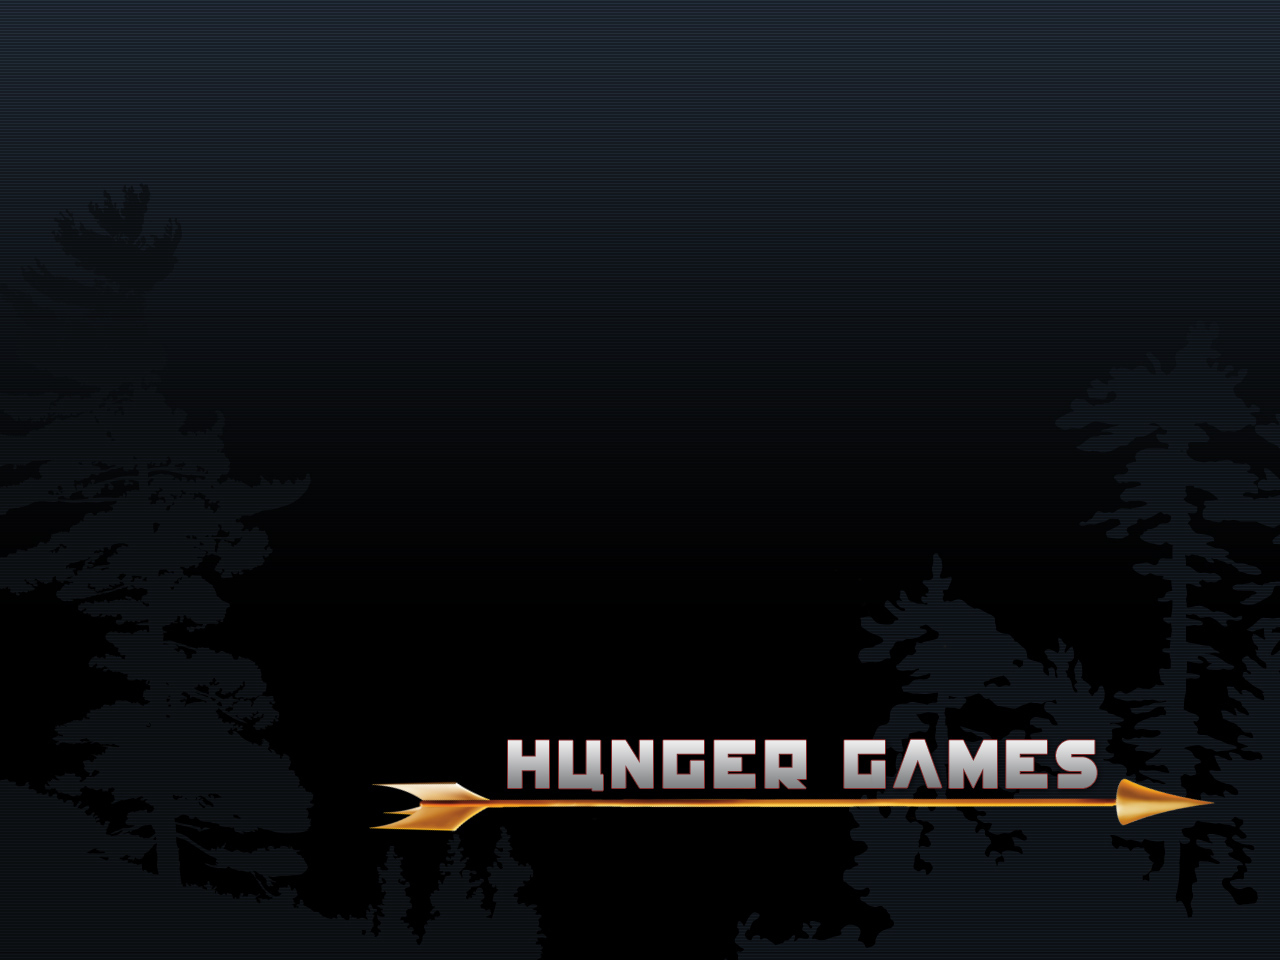 hunger games essays mfacourses web fc com hunger games essays